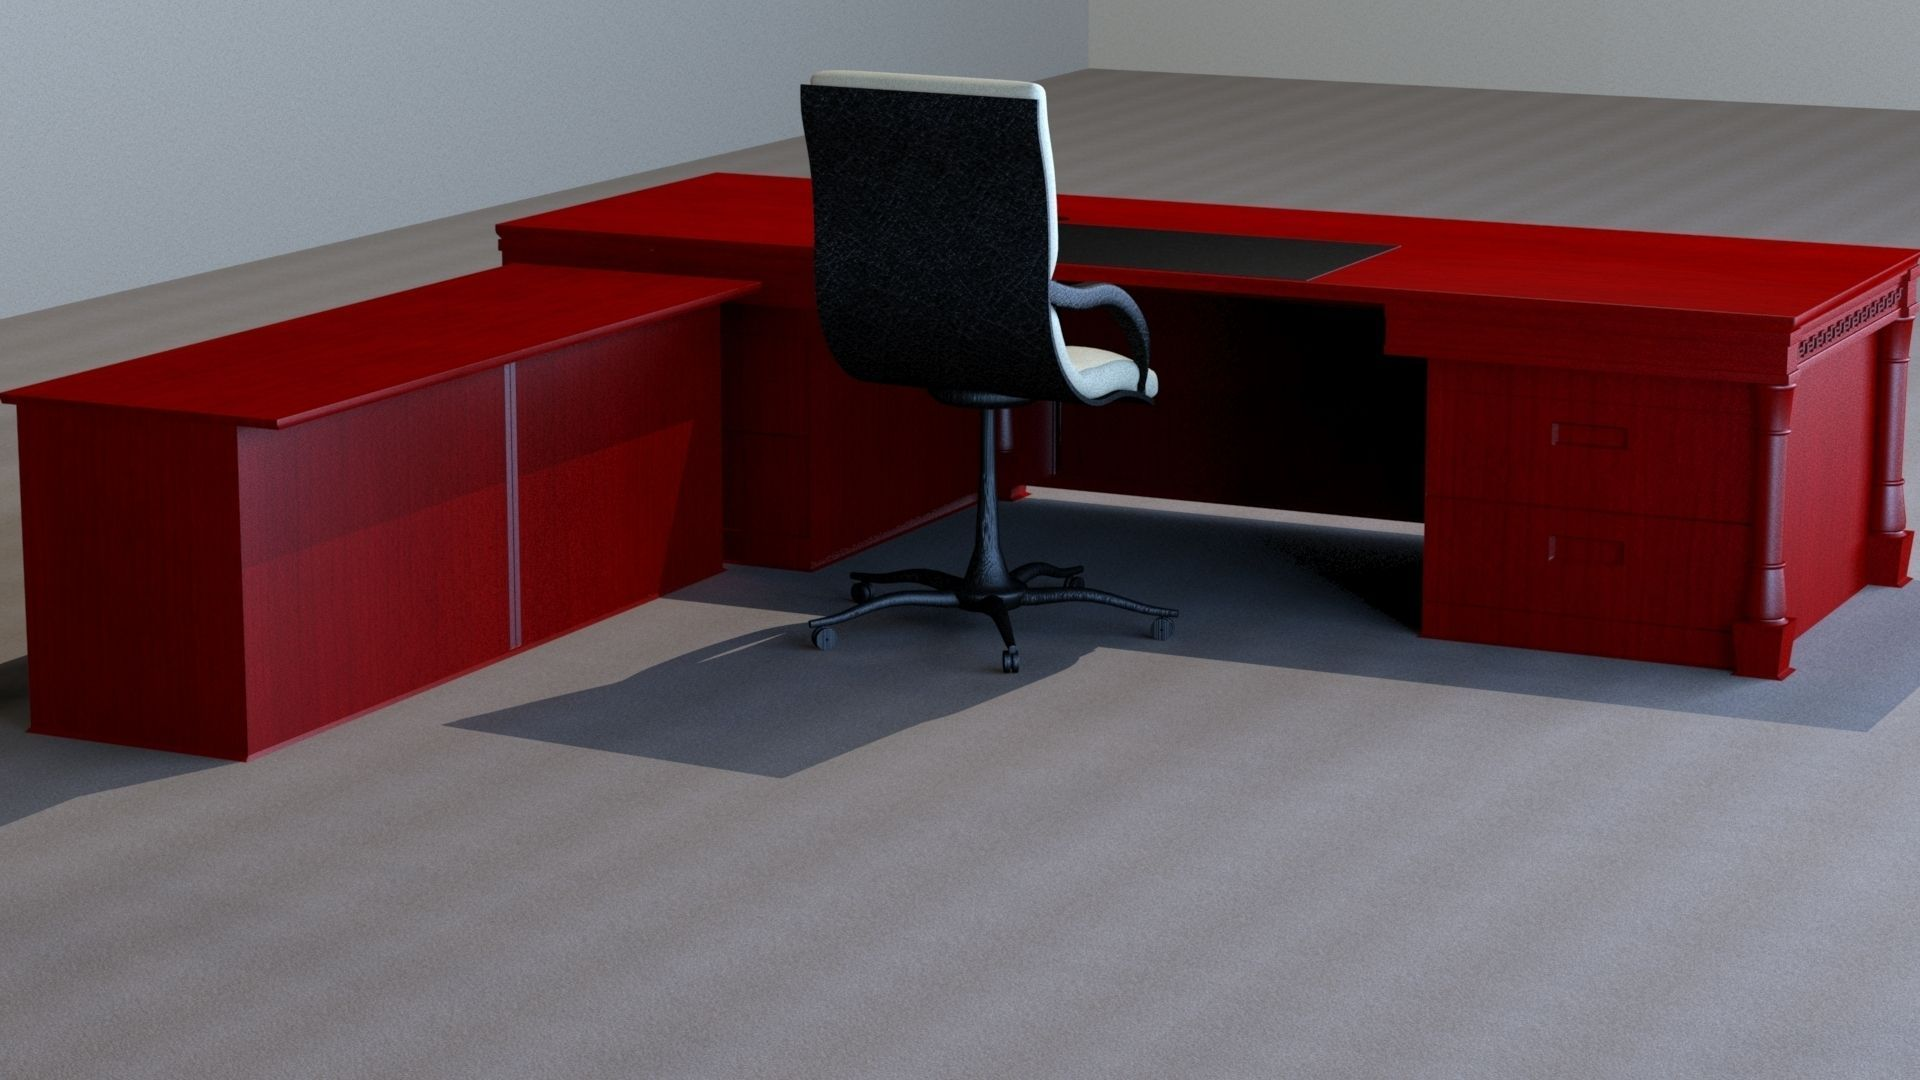 classic office desks. Classic Executive Veneer Desk With Office Furniture 3d Model Max Obj Mtl 2 Desks